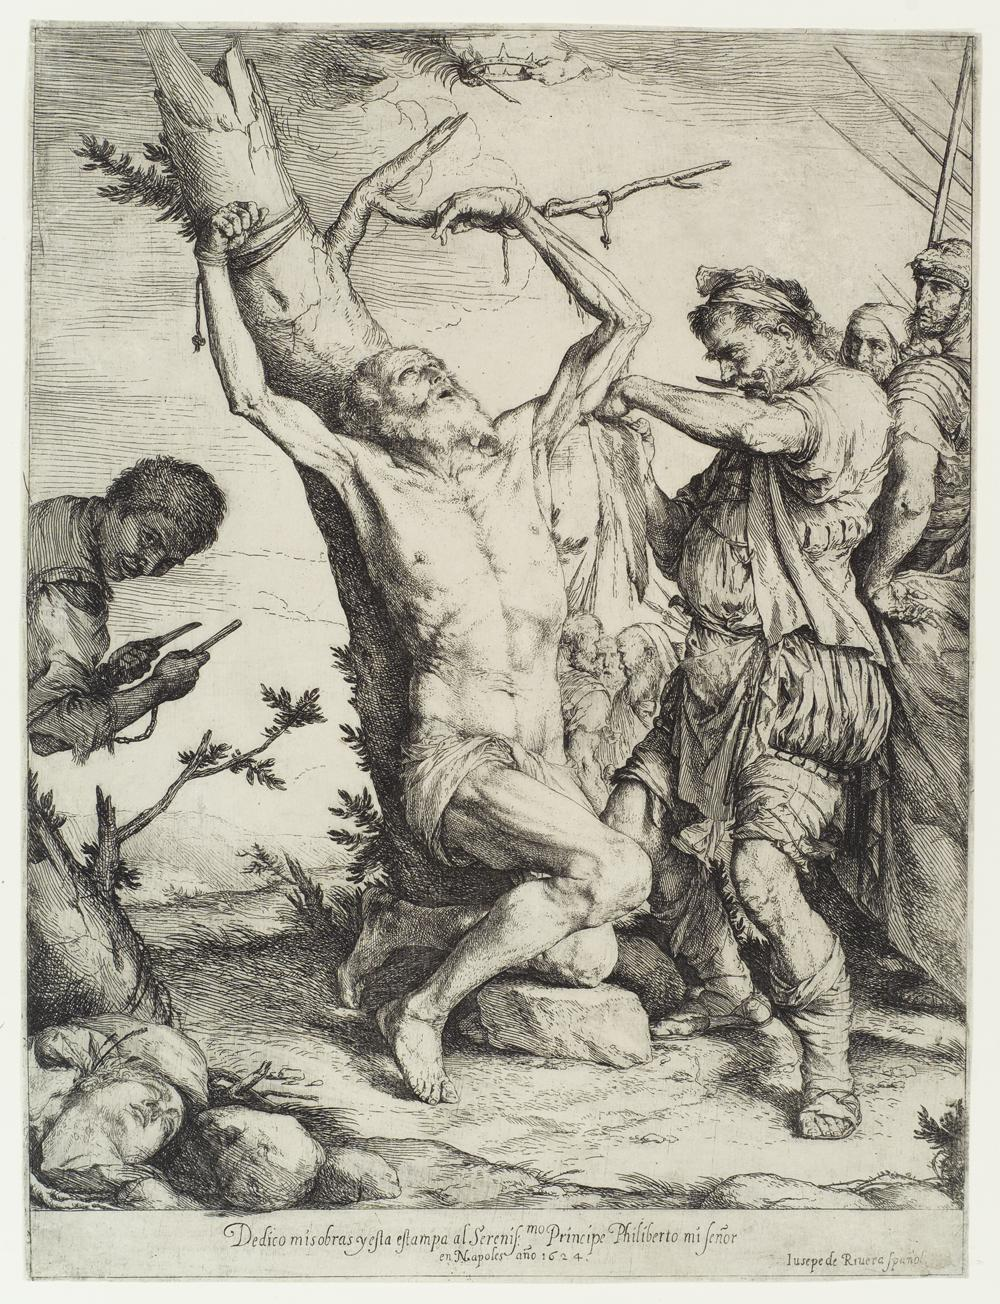 Arte Bella Gallery Ribera Art Of Violence At Dulwich Picture Gallery Review Gory